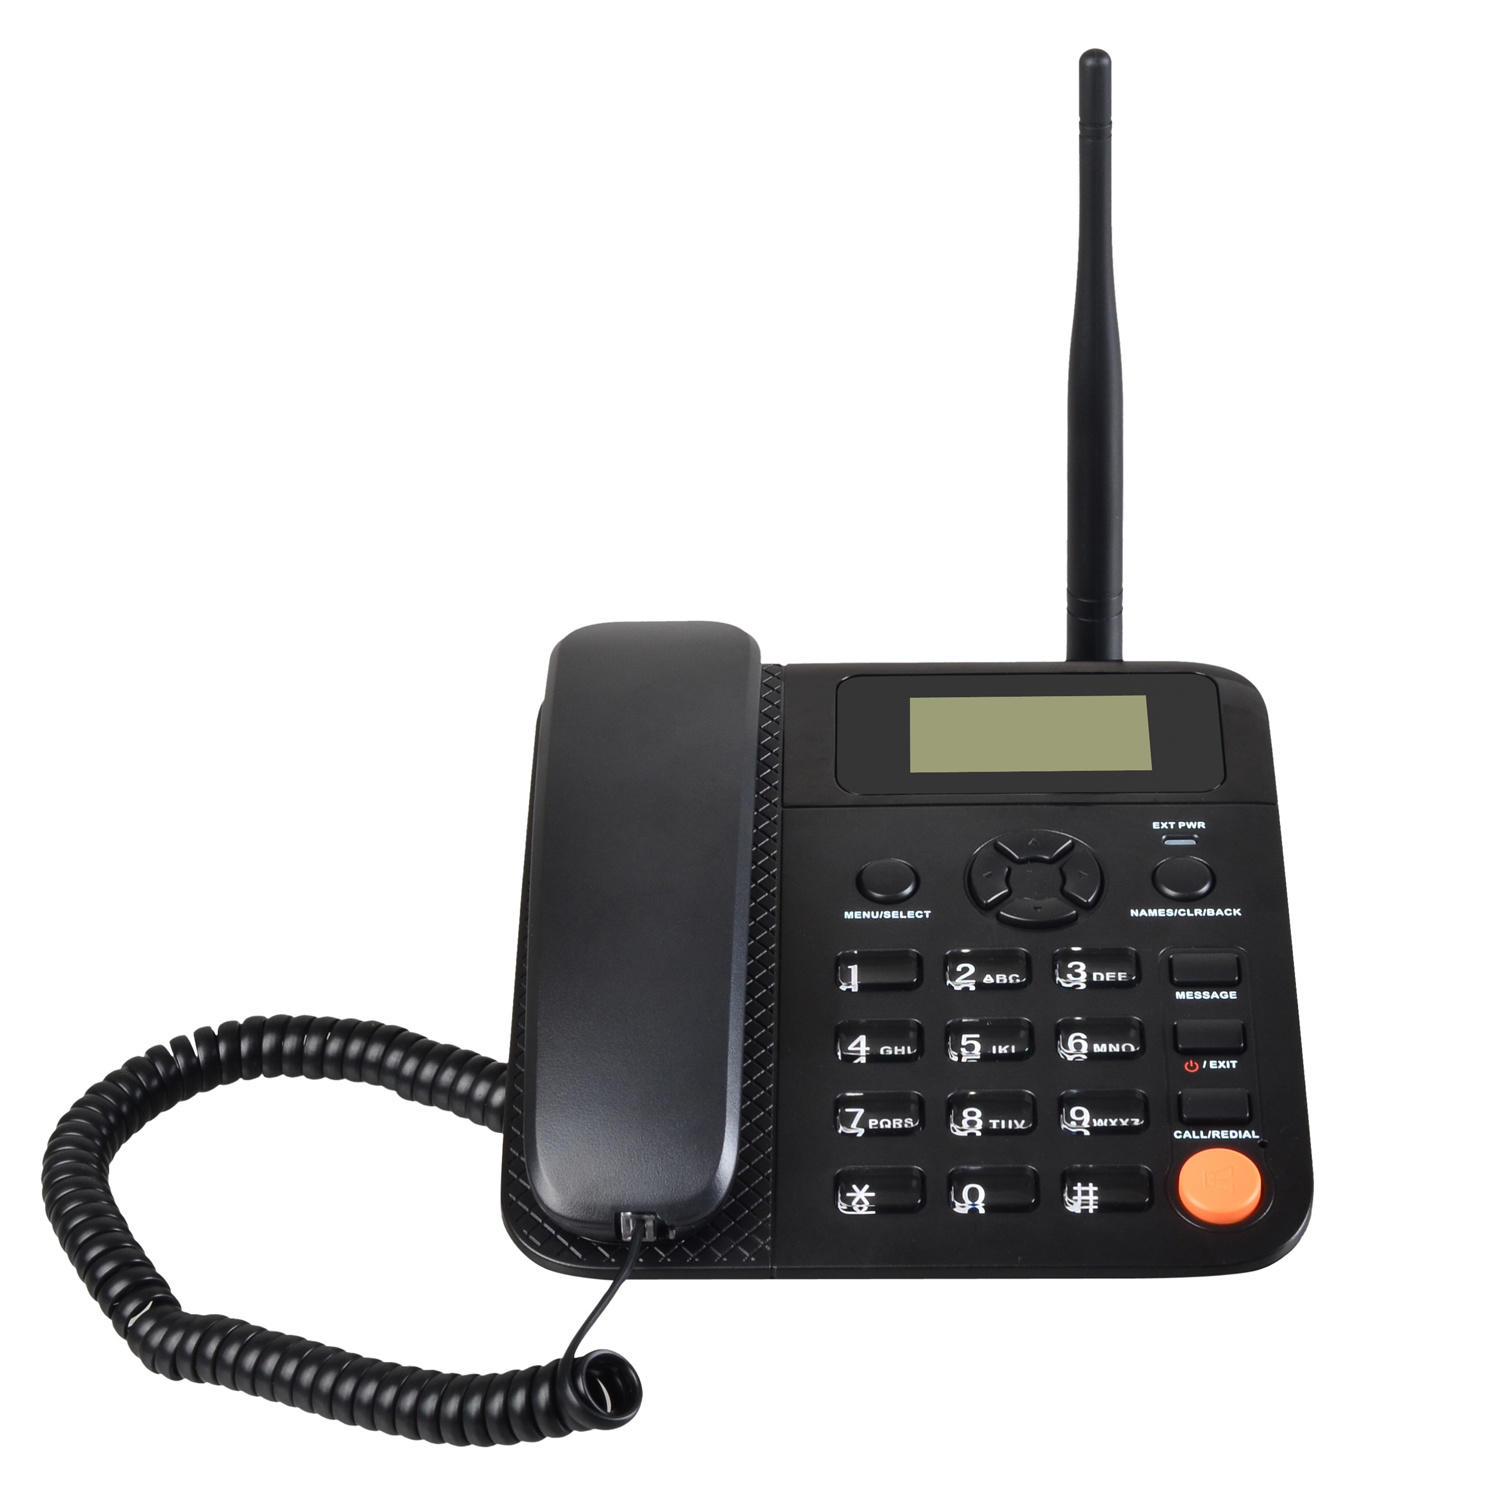 Back up Battery Desktop Phone 2g Wireless Phone Dual SIM GSM Fwp G659 Supports FM Radio